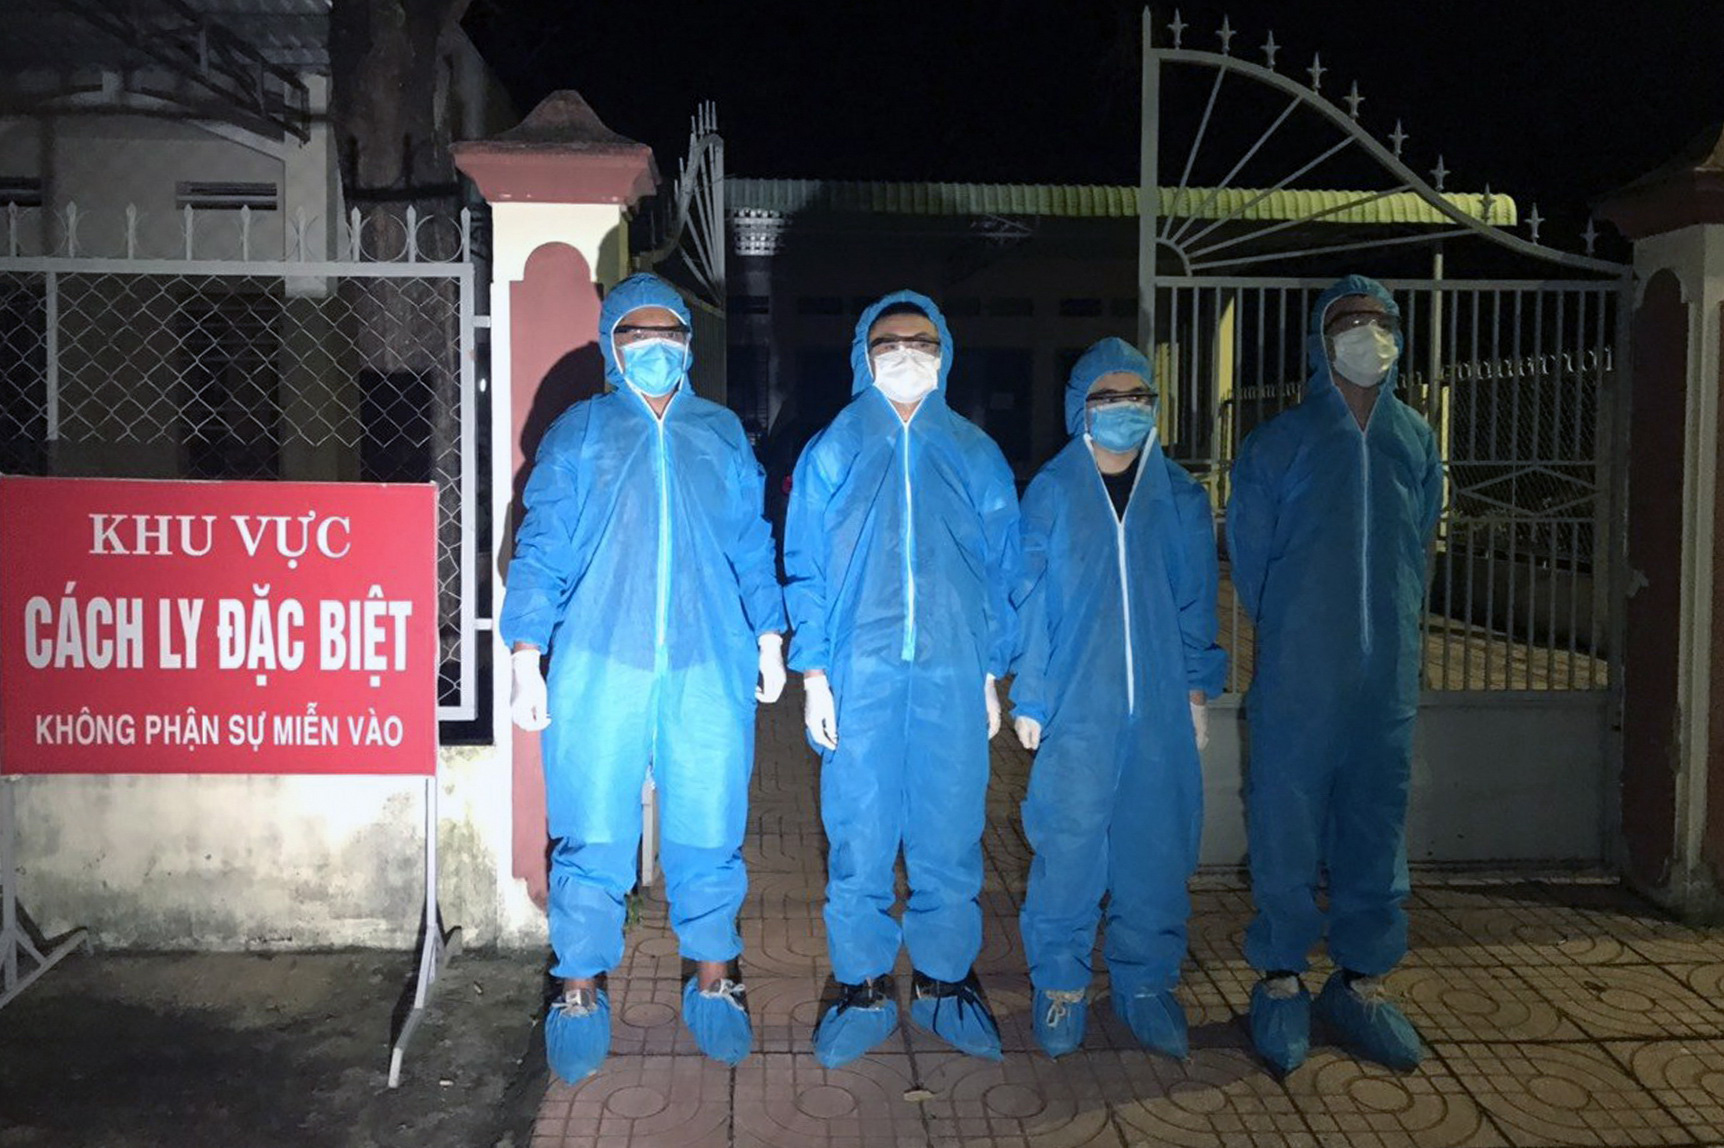 Four Chinese arrested in southern Vietnamese province for making illegal entry